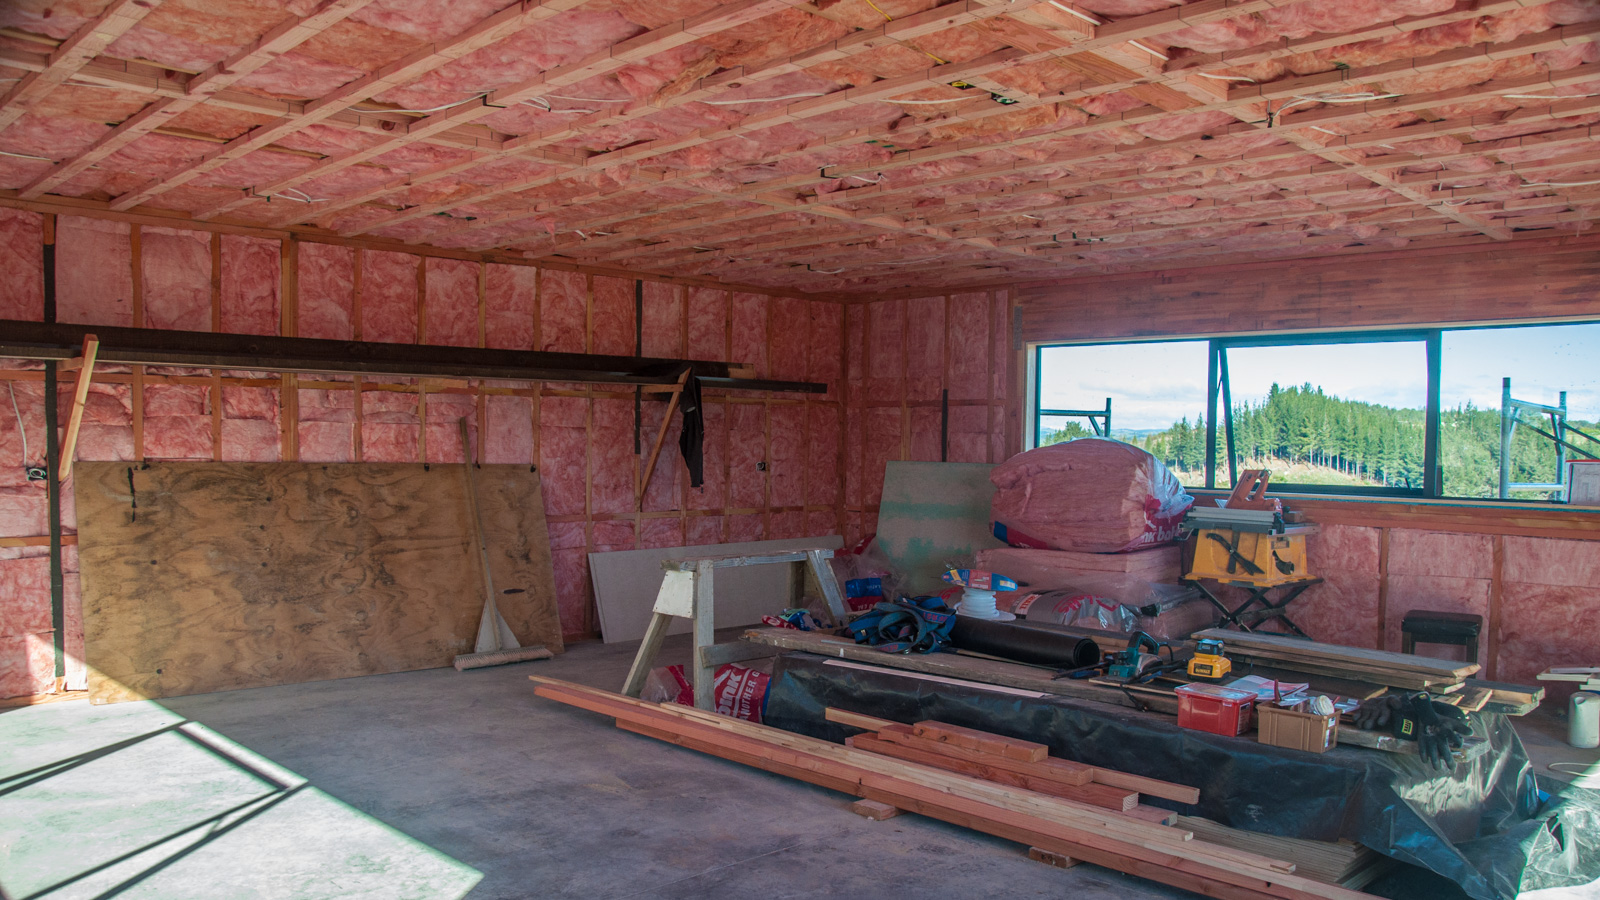 All The Wall Insulation Is In